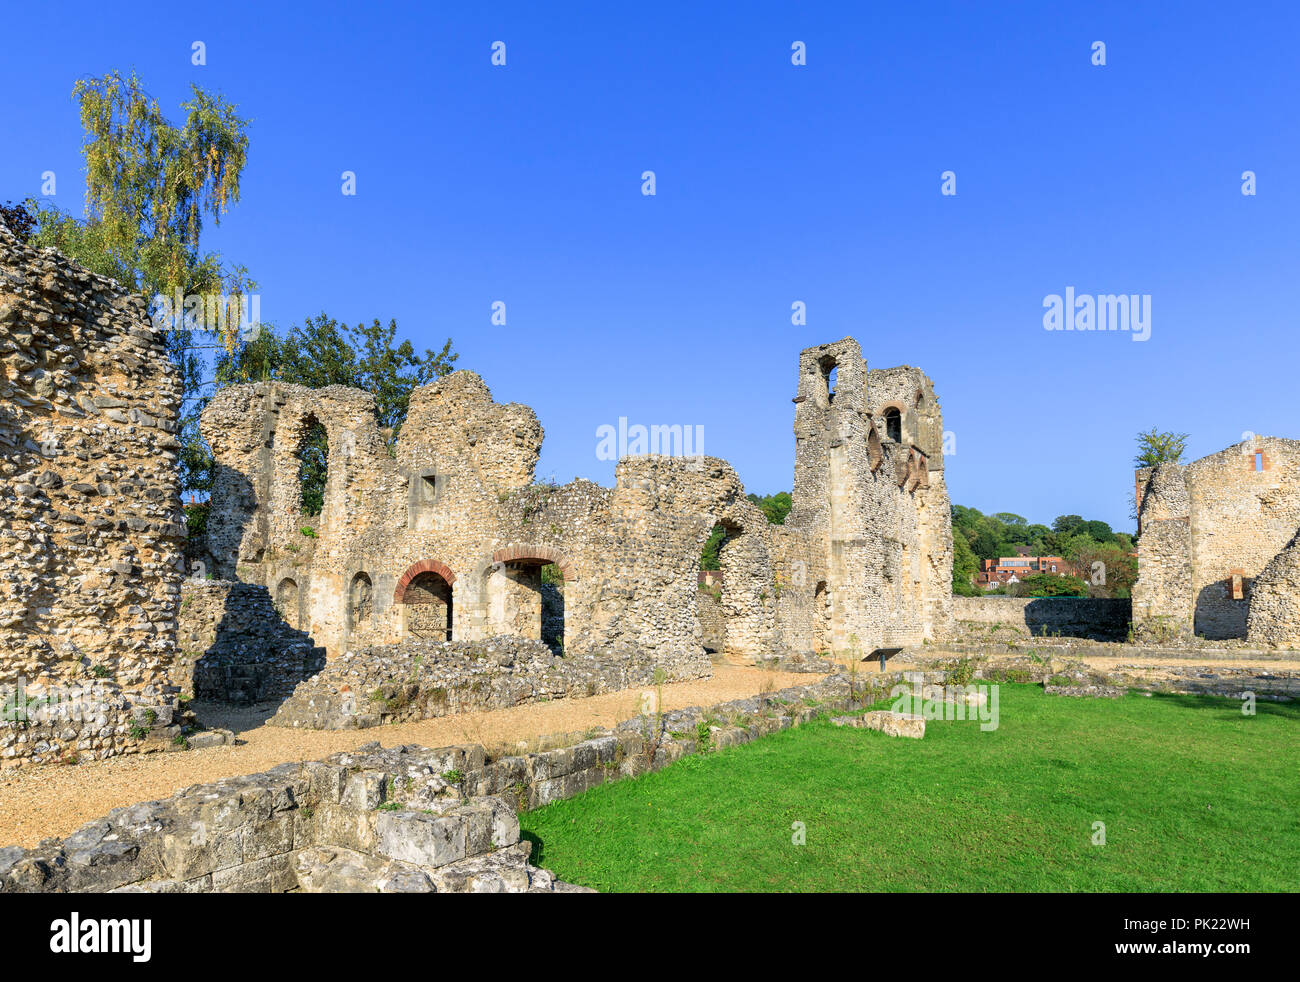 Ruins of ancient medieval Wolvesey Castle (Old Bishop's Palace) in Winchester, Hampshire, southern England, UK on a bright sunny day with blue sky Stock Photo